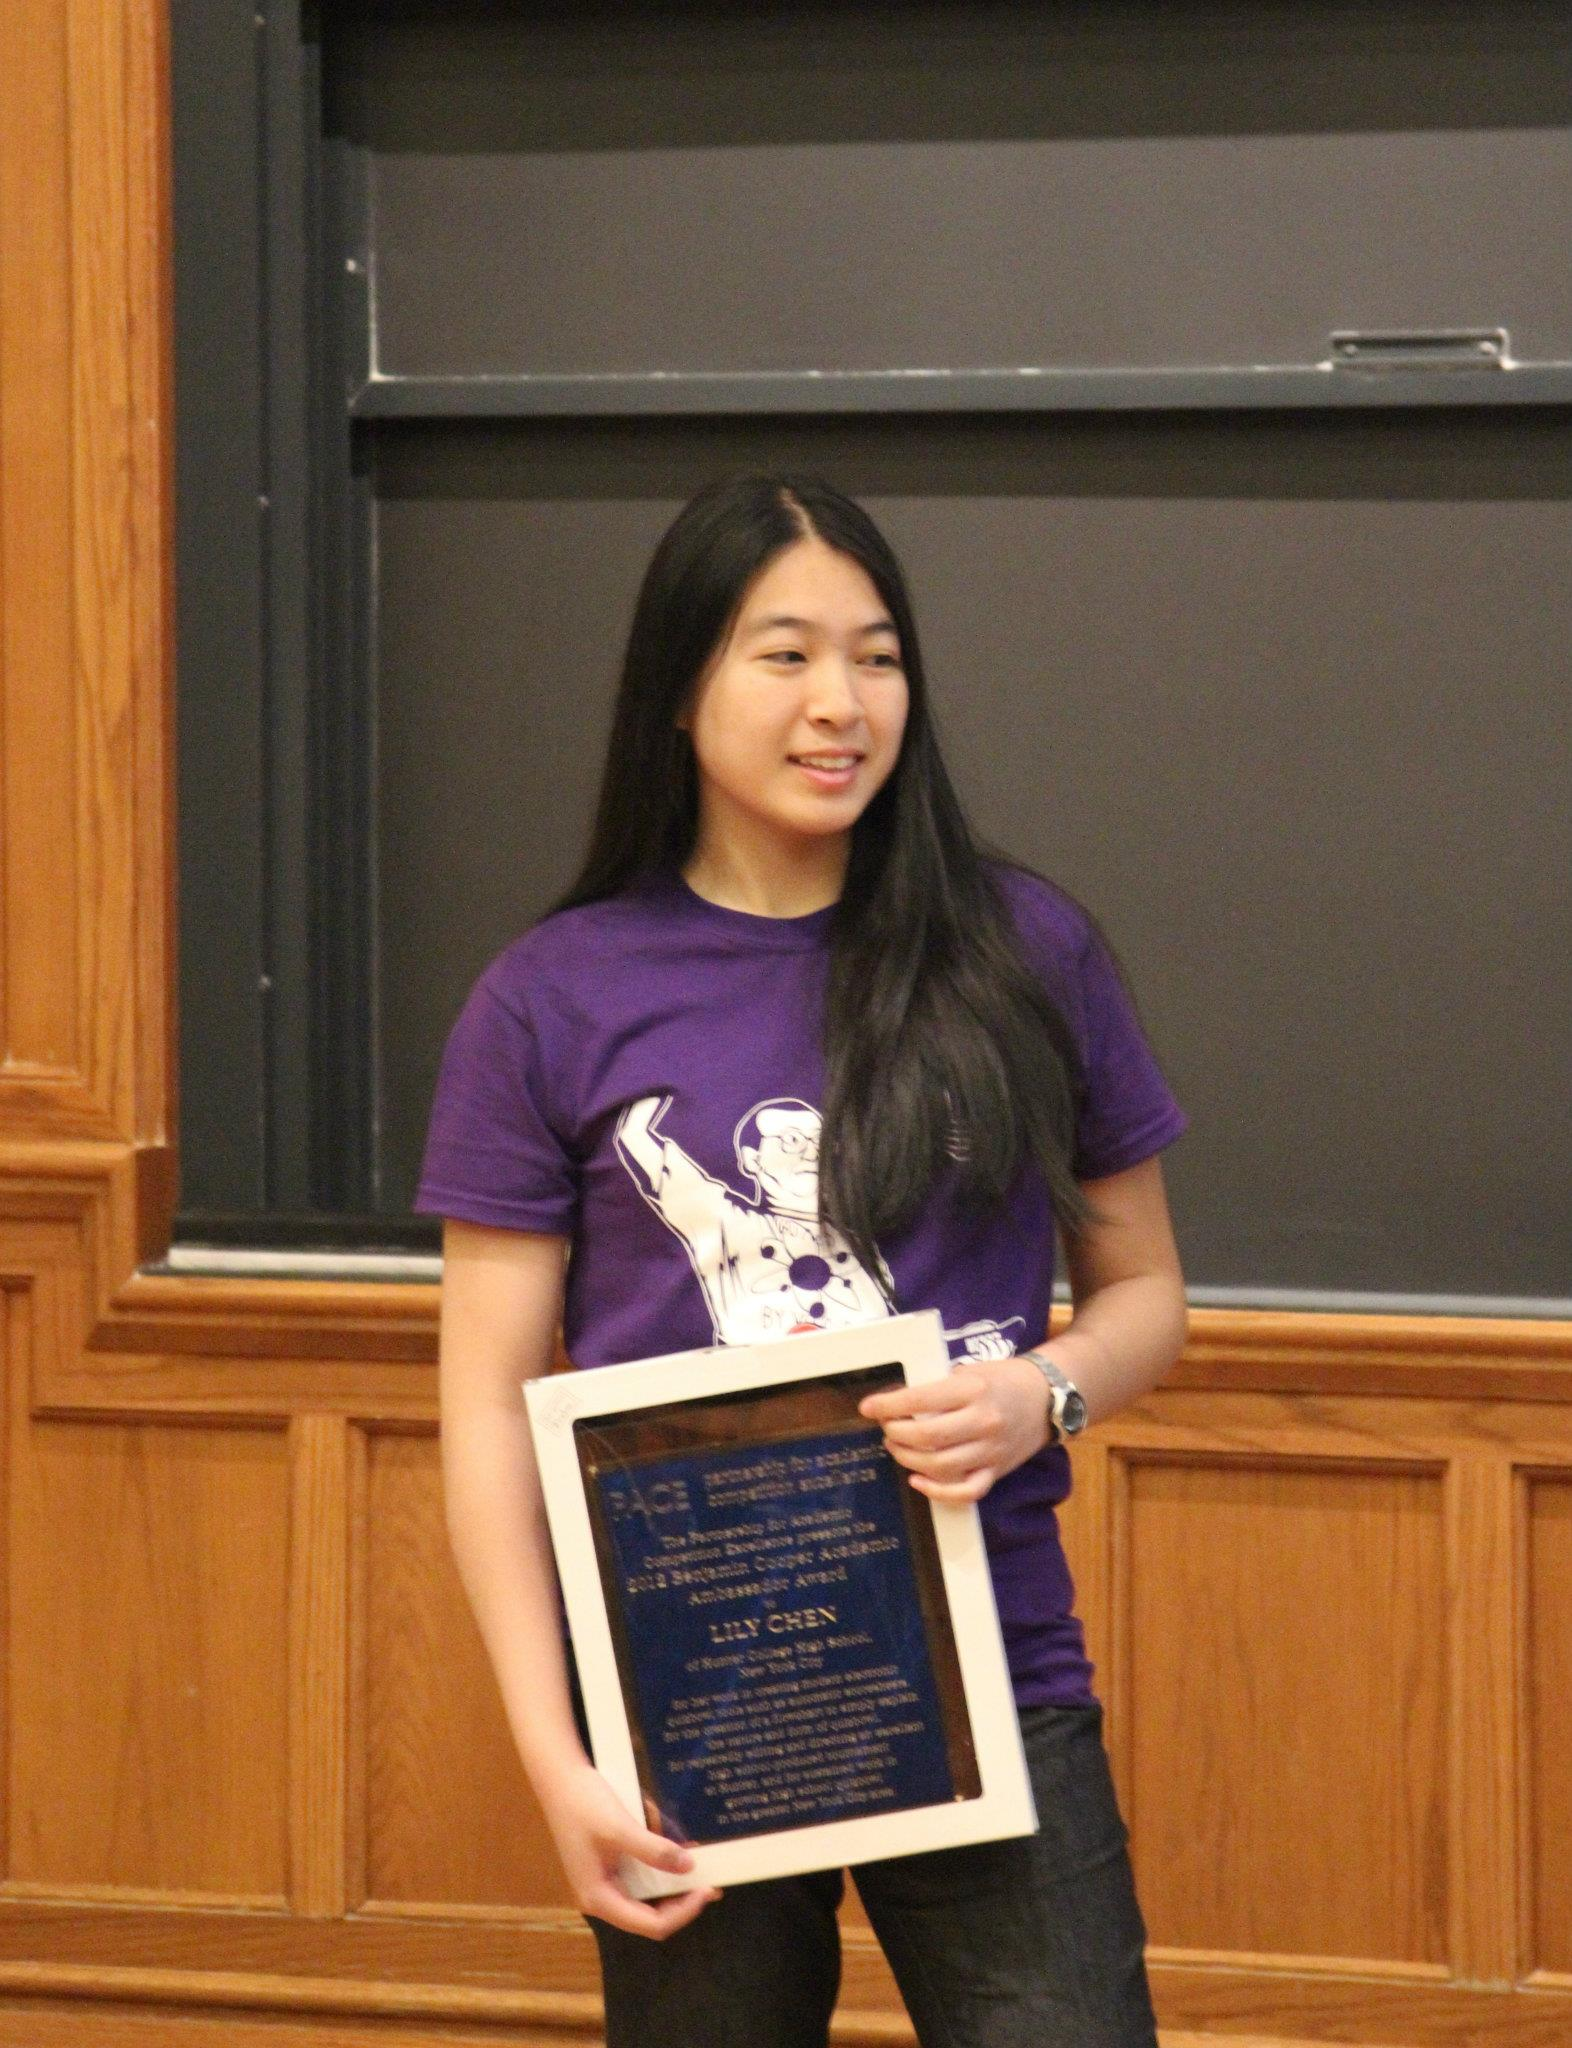 Lily Chen receiving her Cooper Award